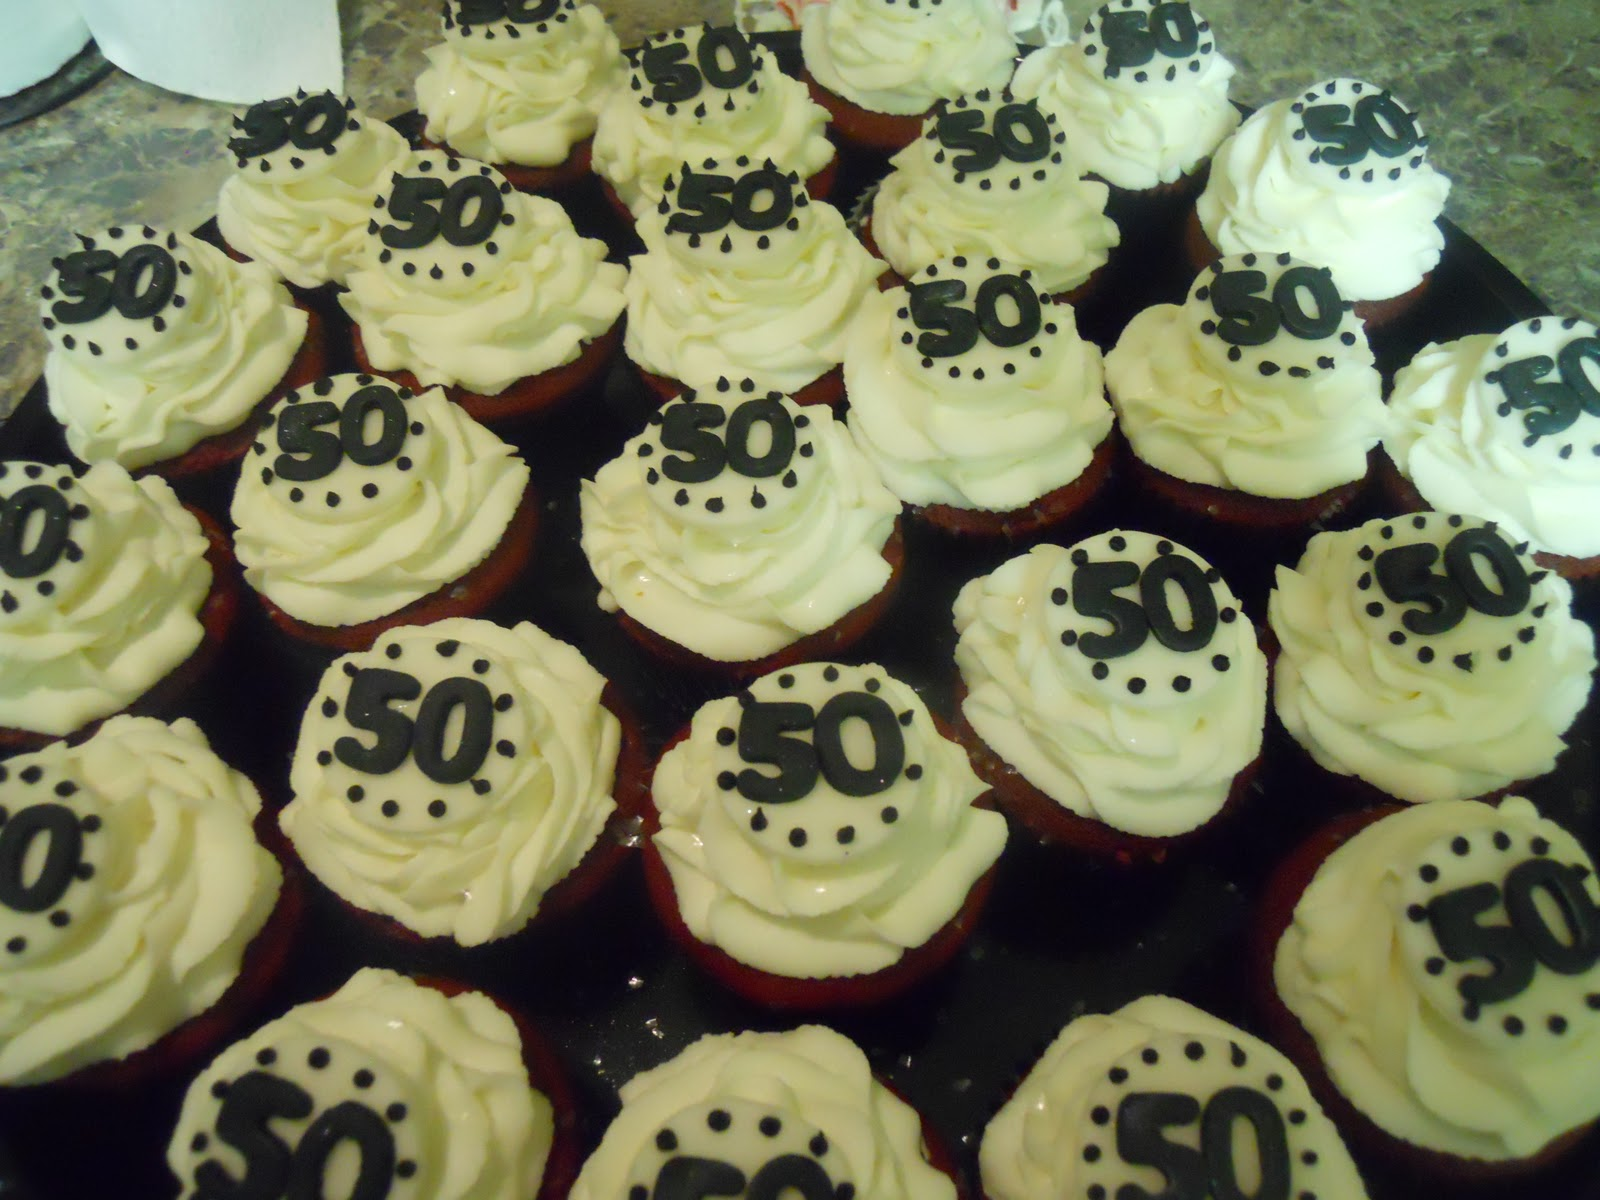 50th Birthday Cupcakes Decorations Image Inspiration of Cake and